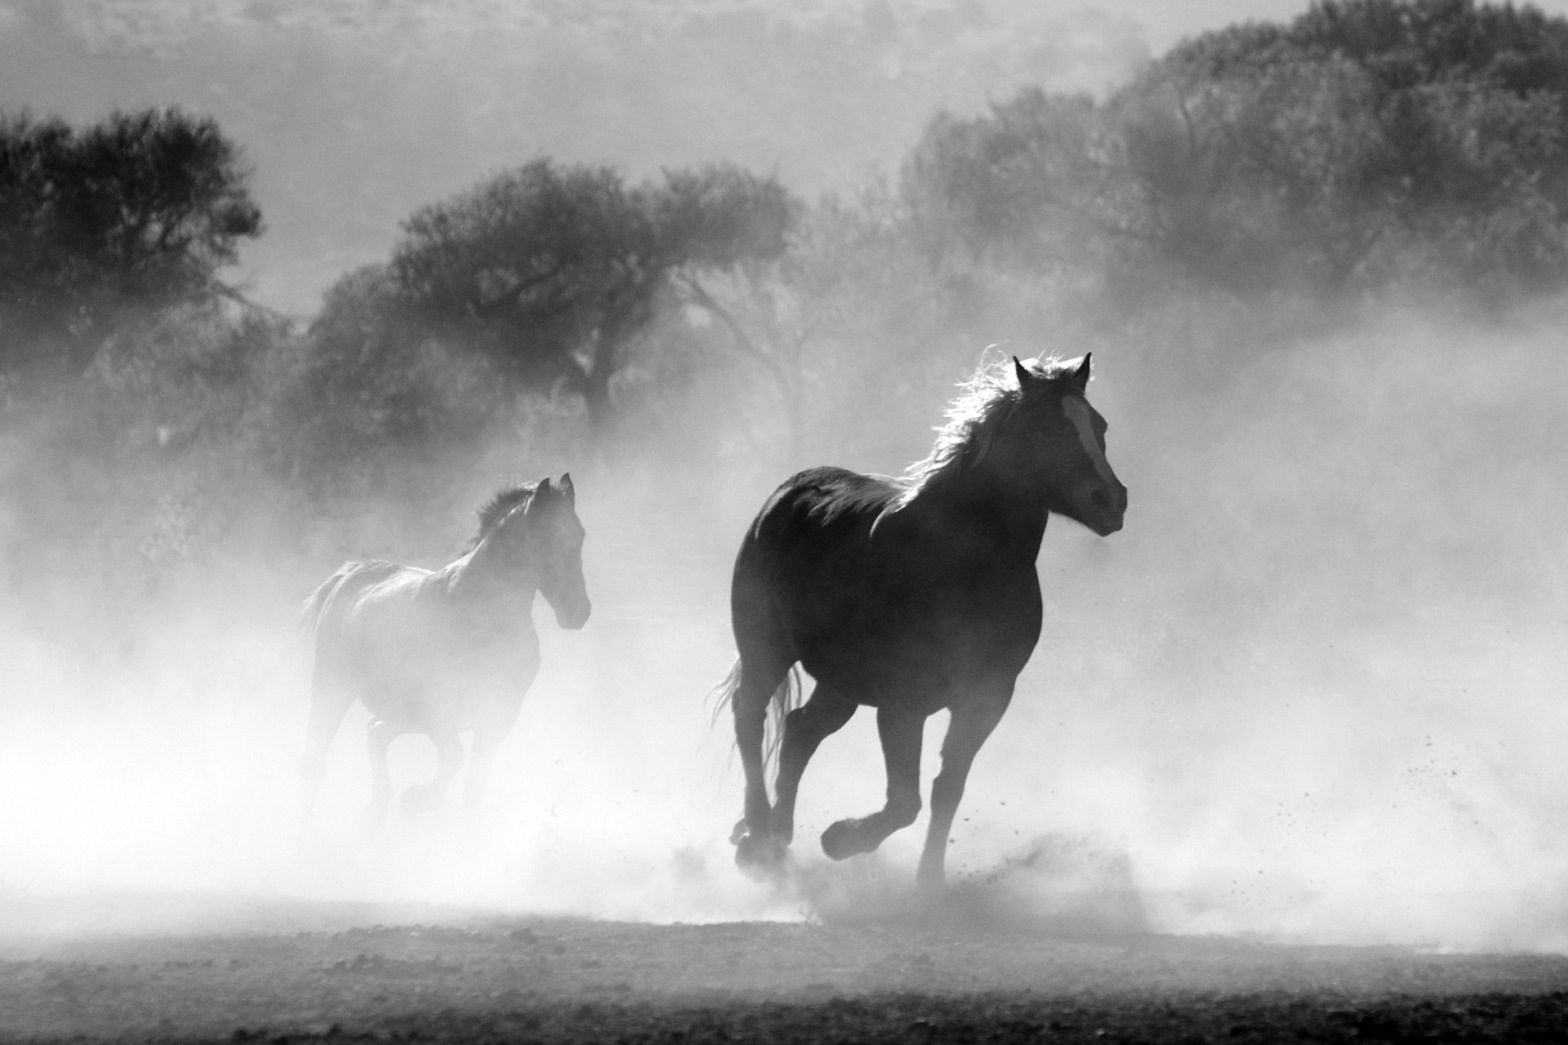 https://pixabay.com/en/horse-herd-dust-nature-wild-430441/